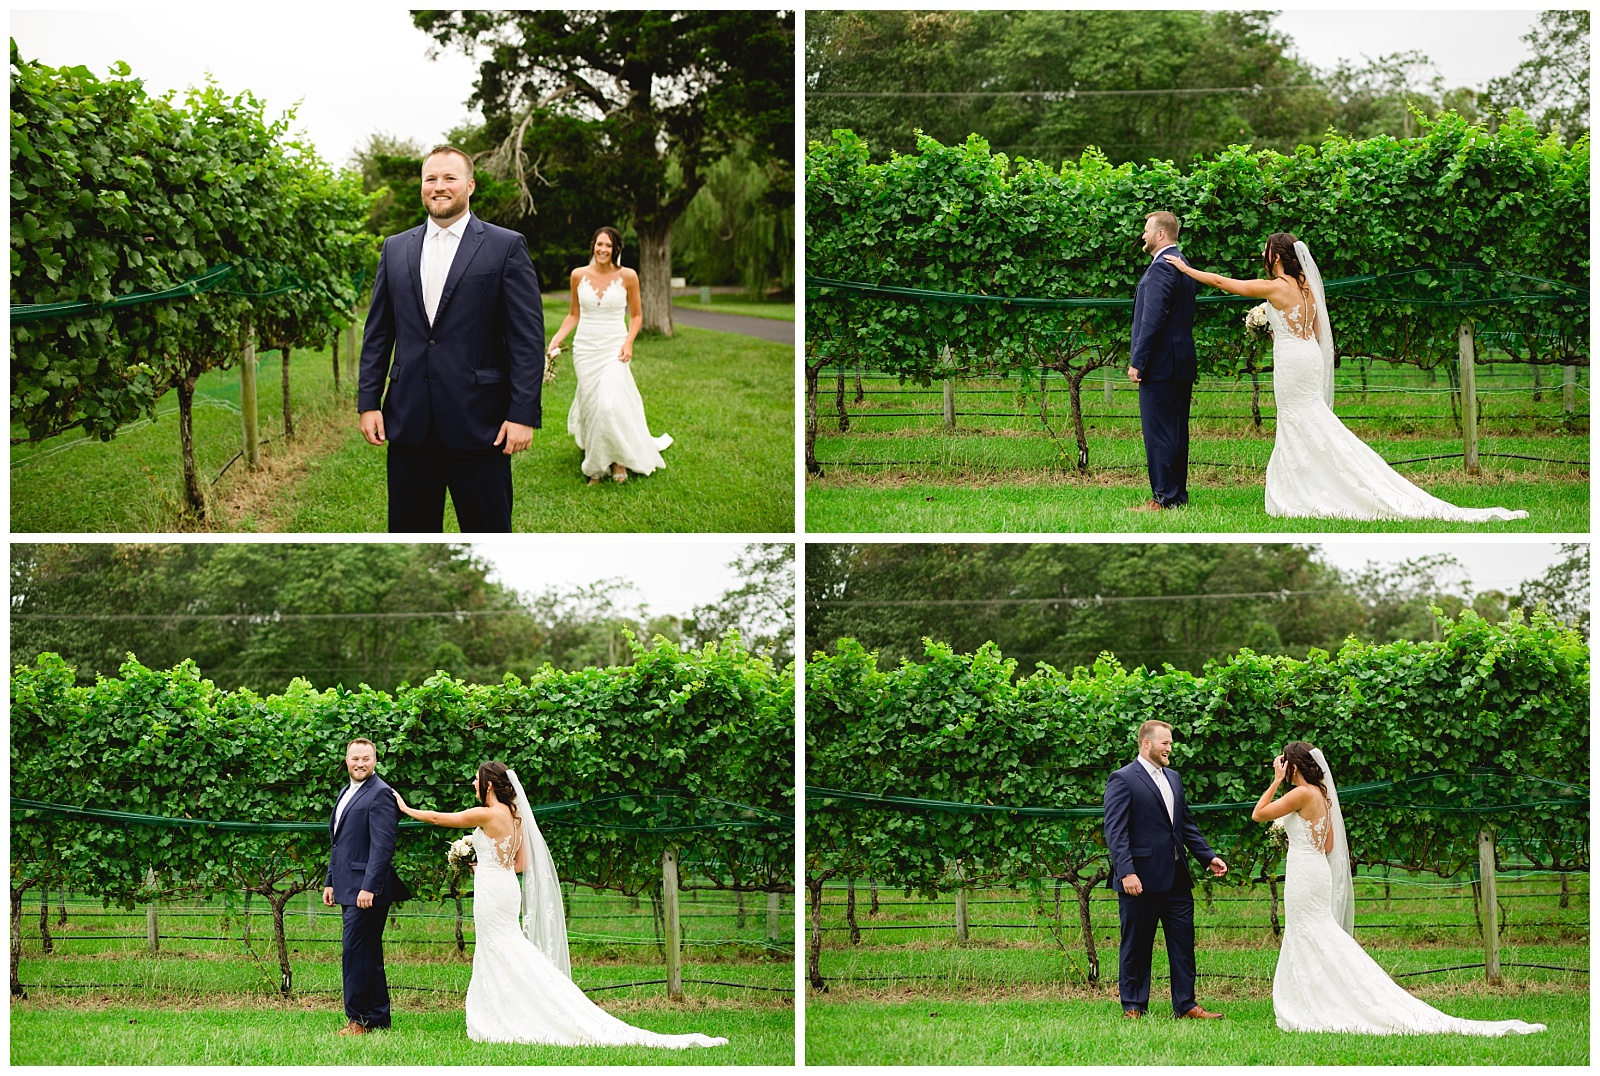 willow creek winery wedding cape may wedding cape may new jersey winery wedding outdoor ceremony tent ceremony